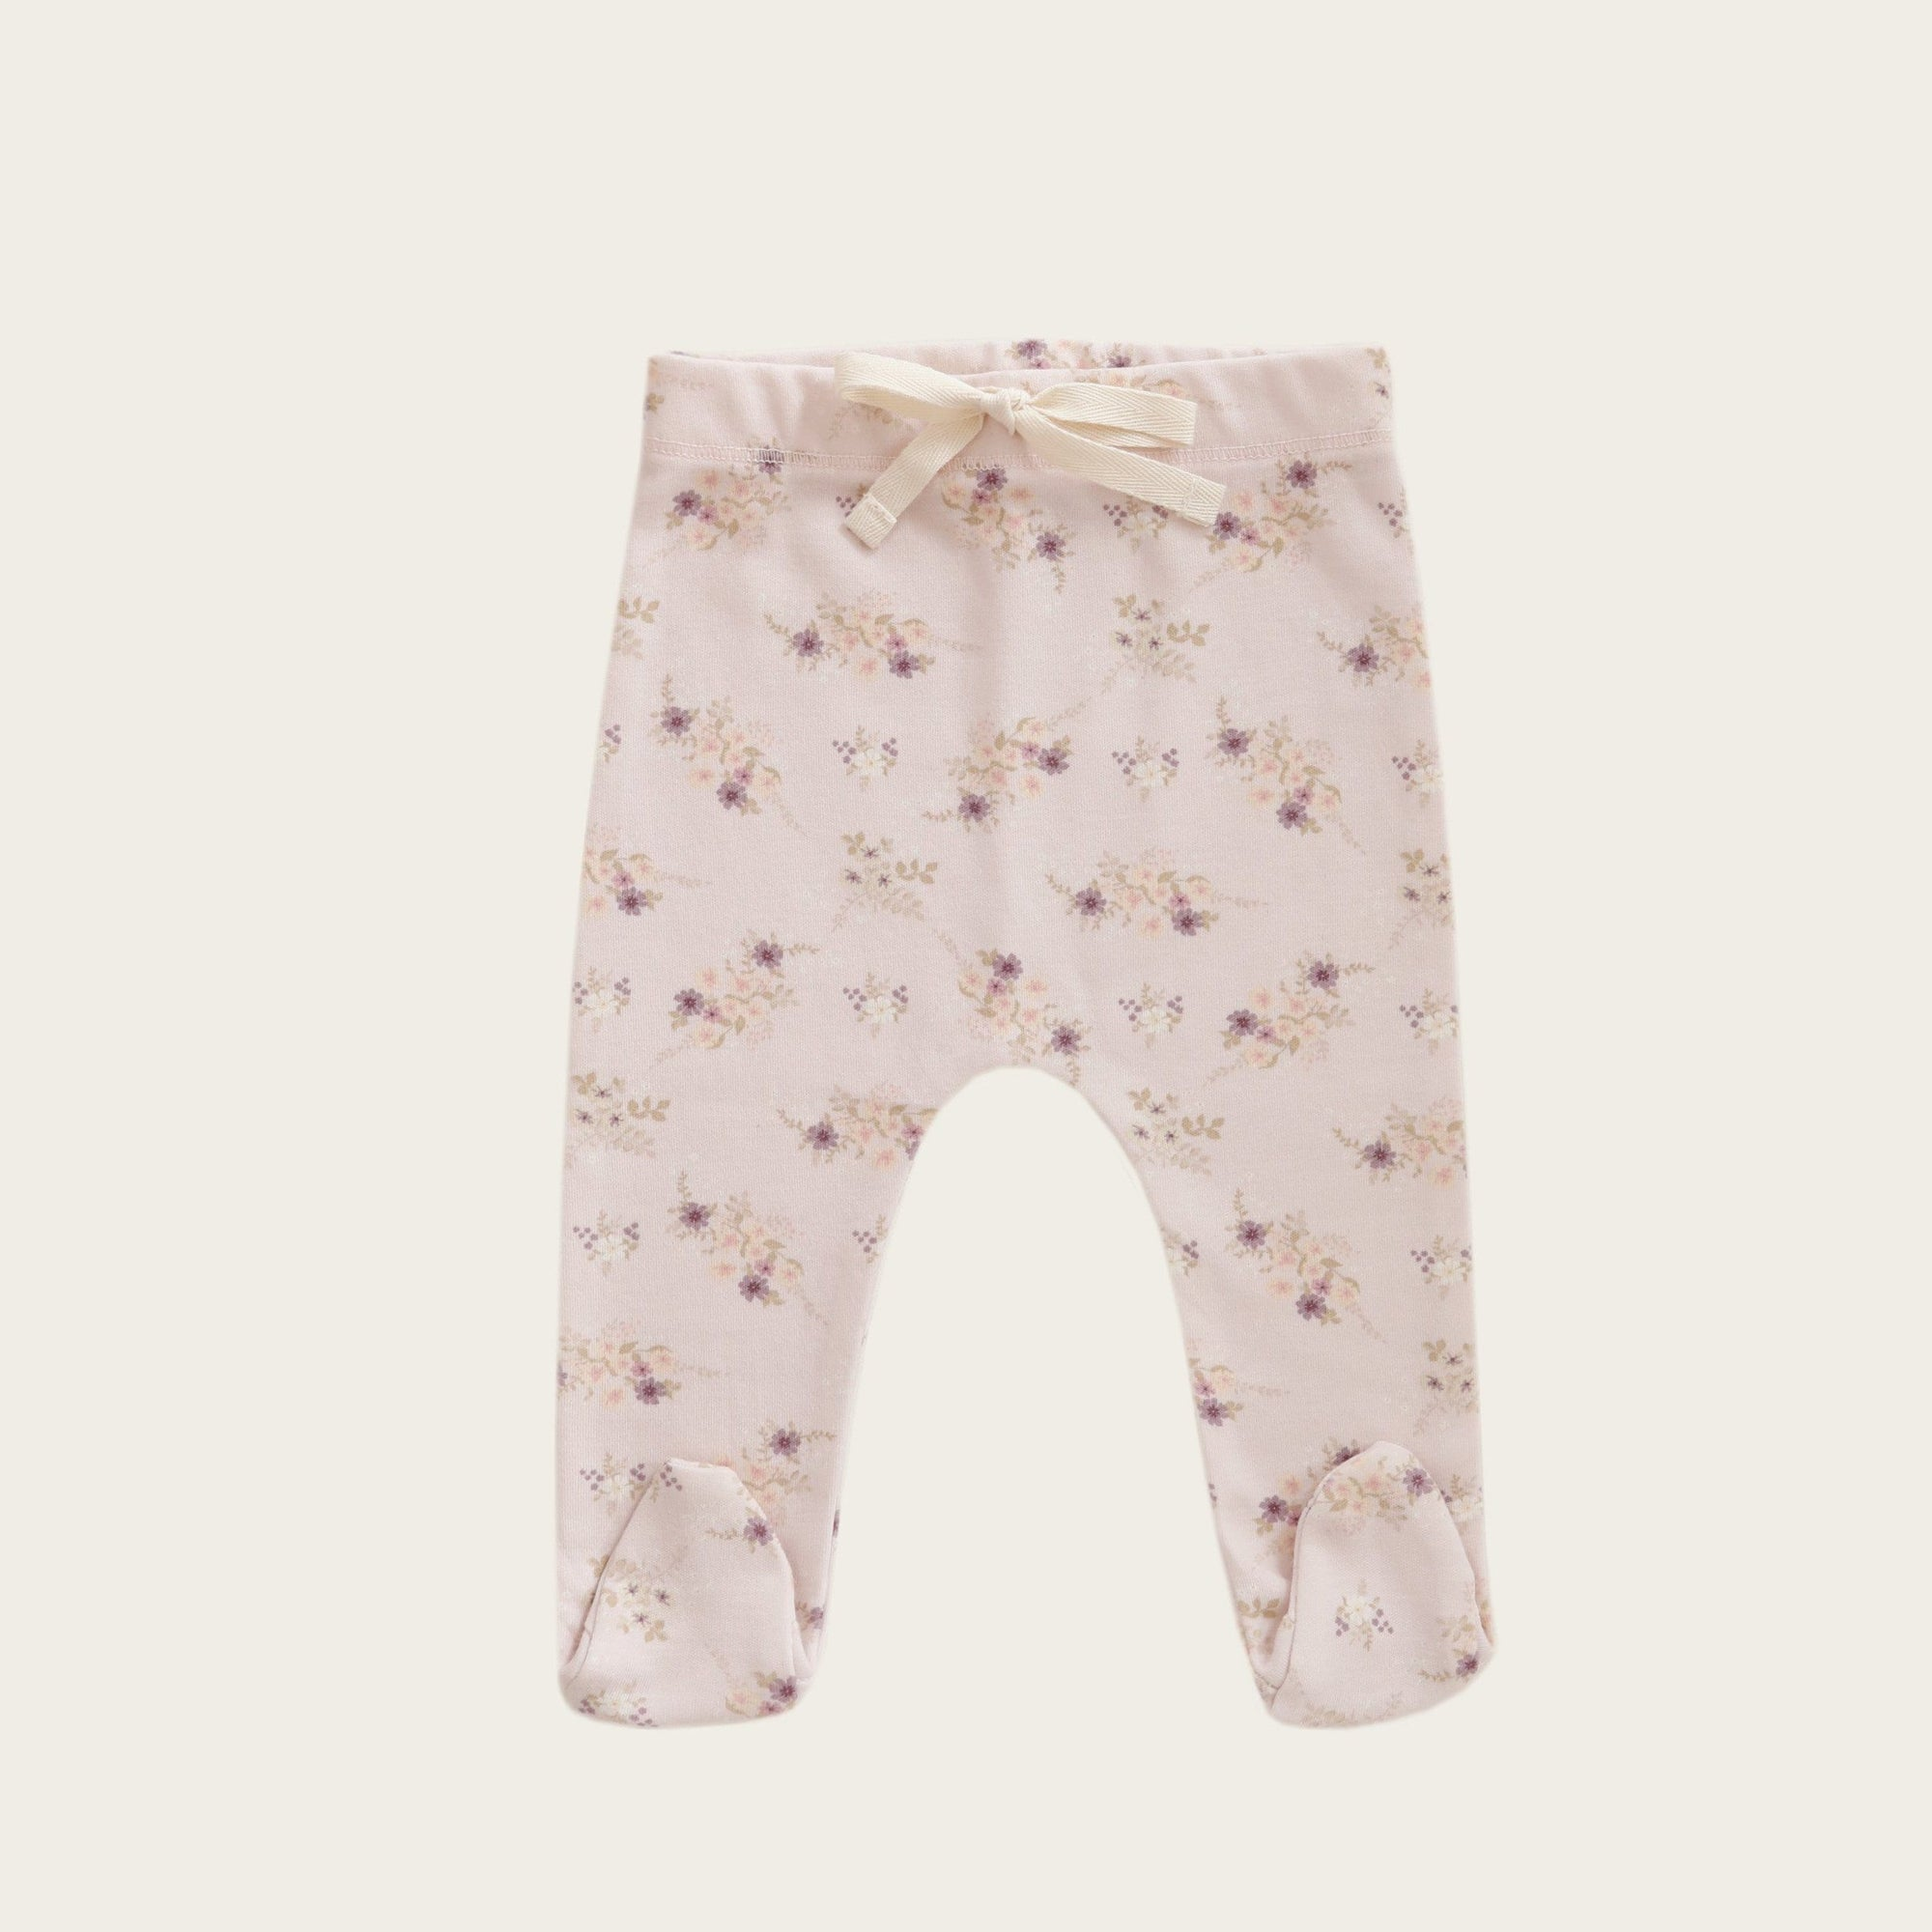 Sweet Pea Floral Footed Pant